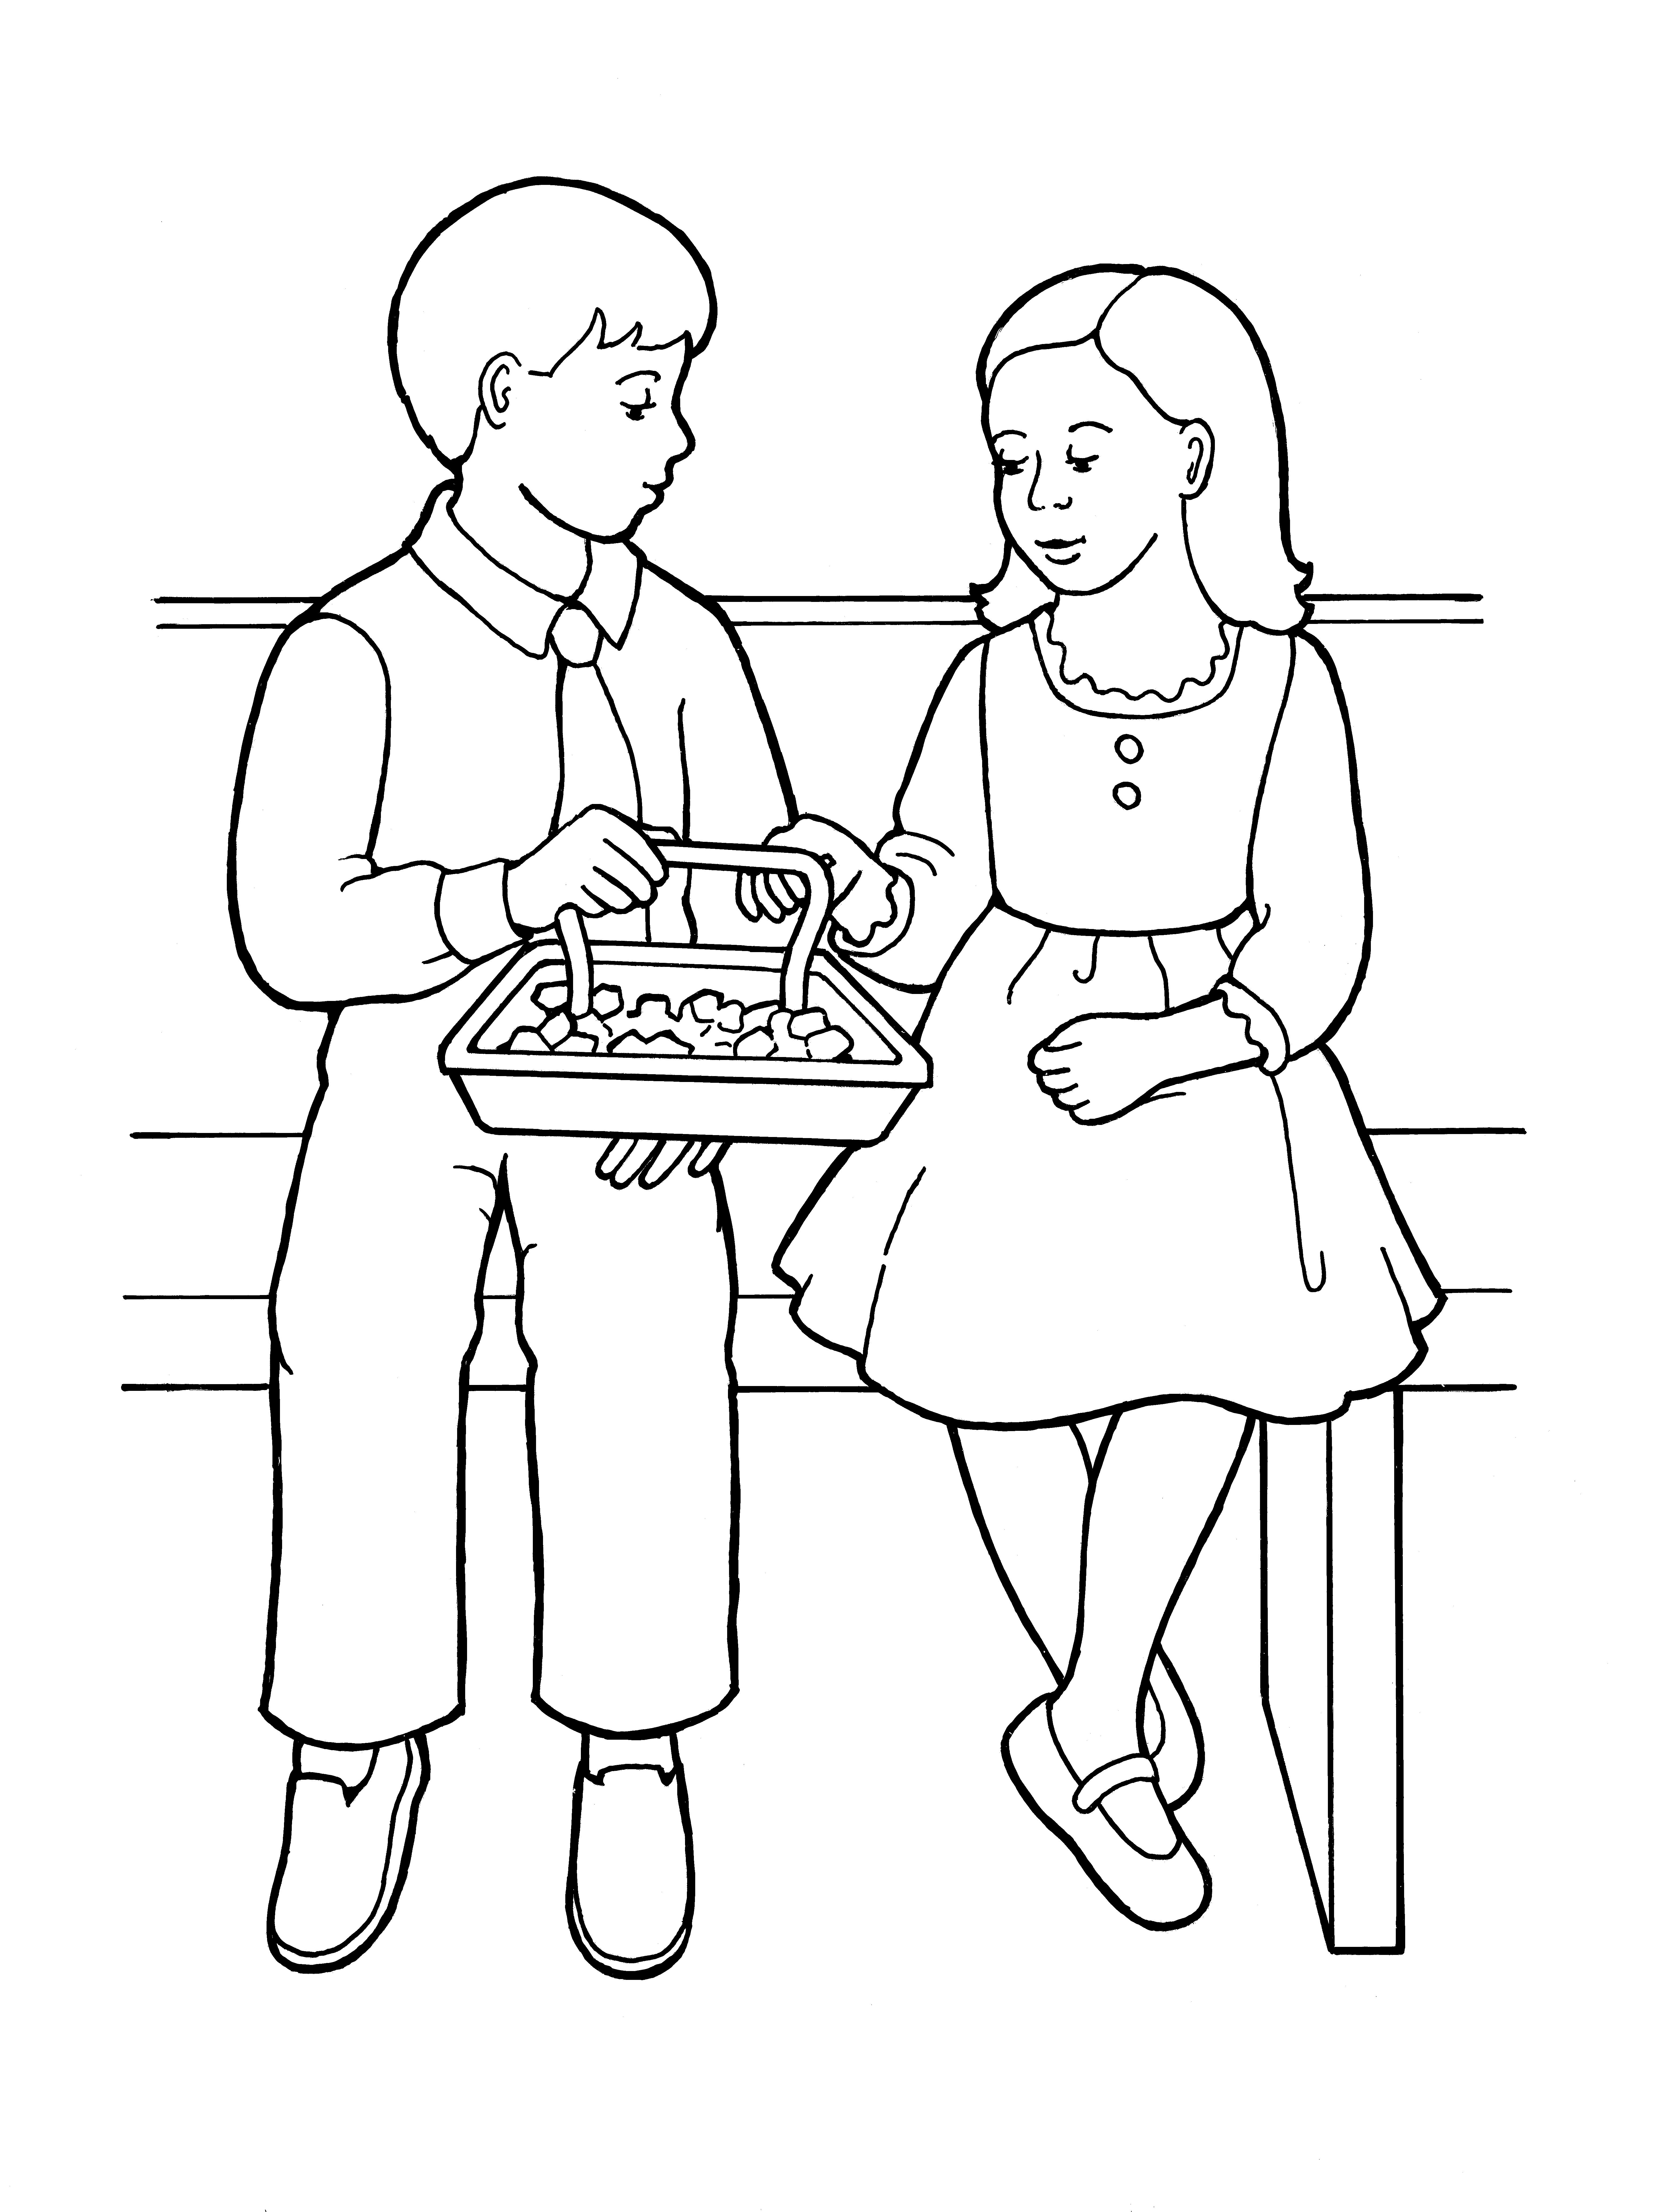 An illustration of a young girl and young boy partaking of the sacrament bread, from the nursery manual Behold Your Little Ones (2008), page 115.